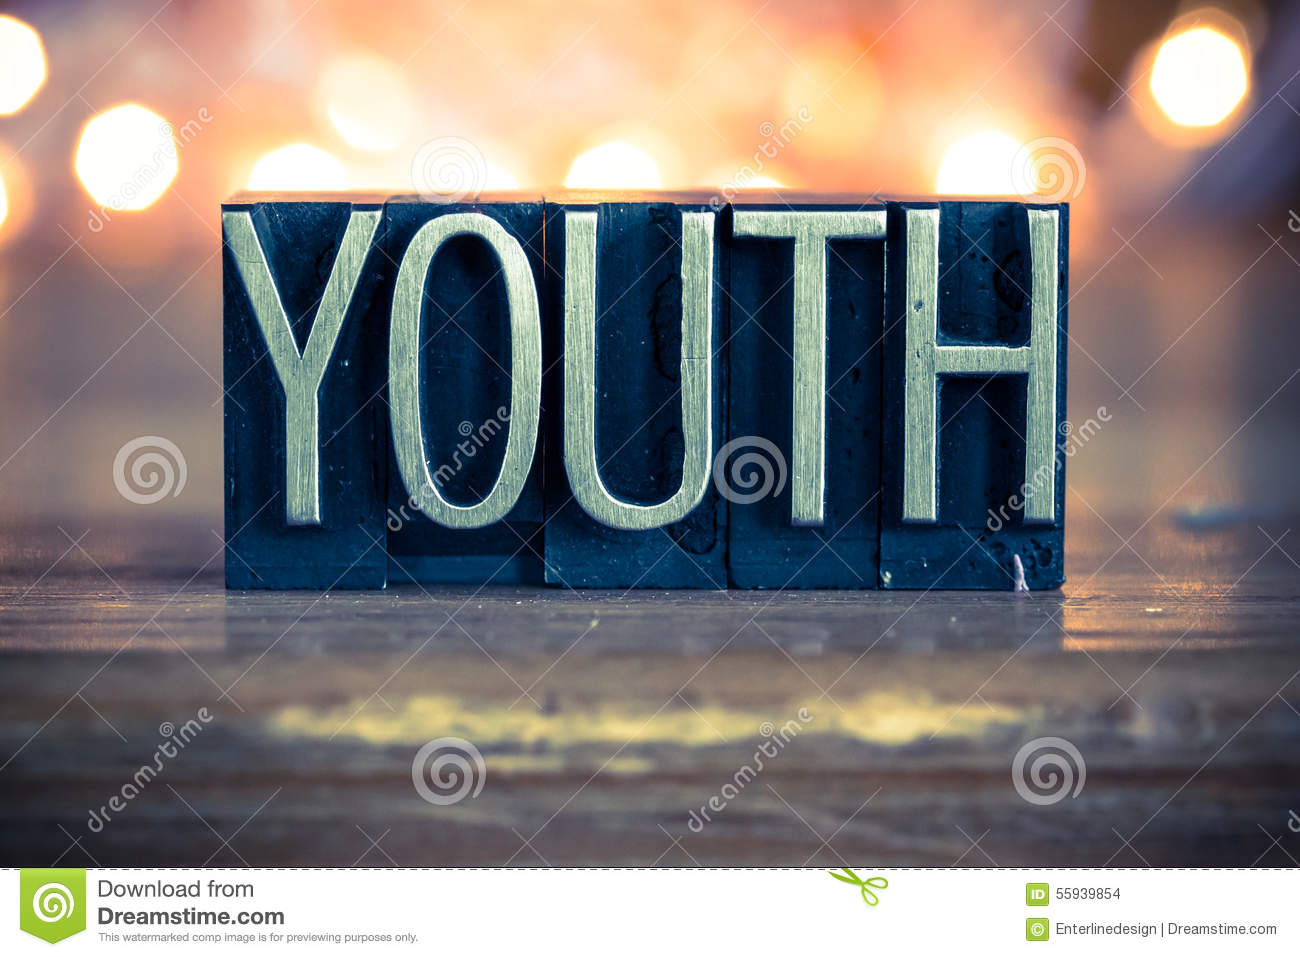 Youth concept metal letterpress type stock photo image for Concept metal